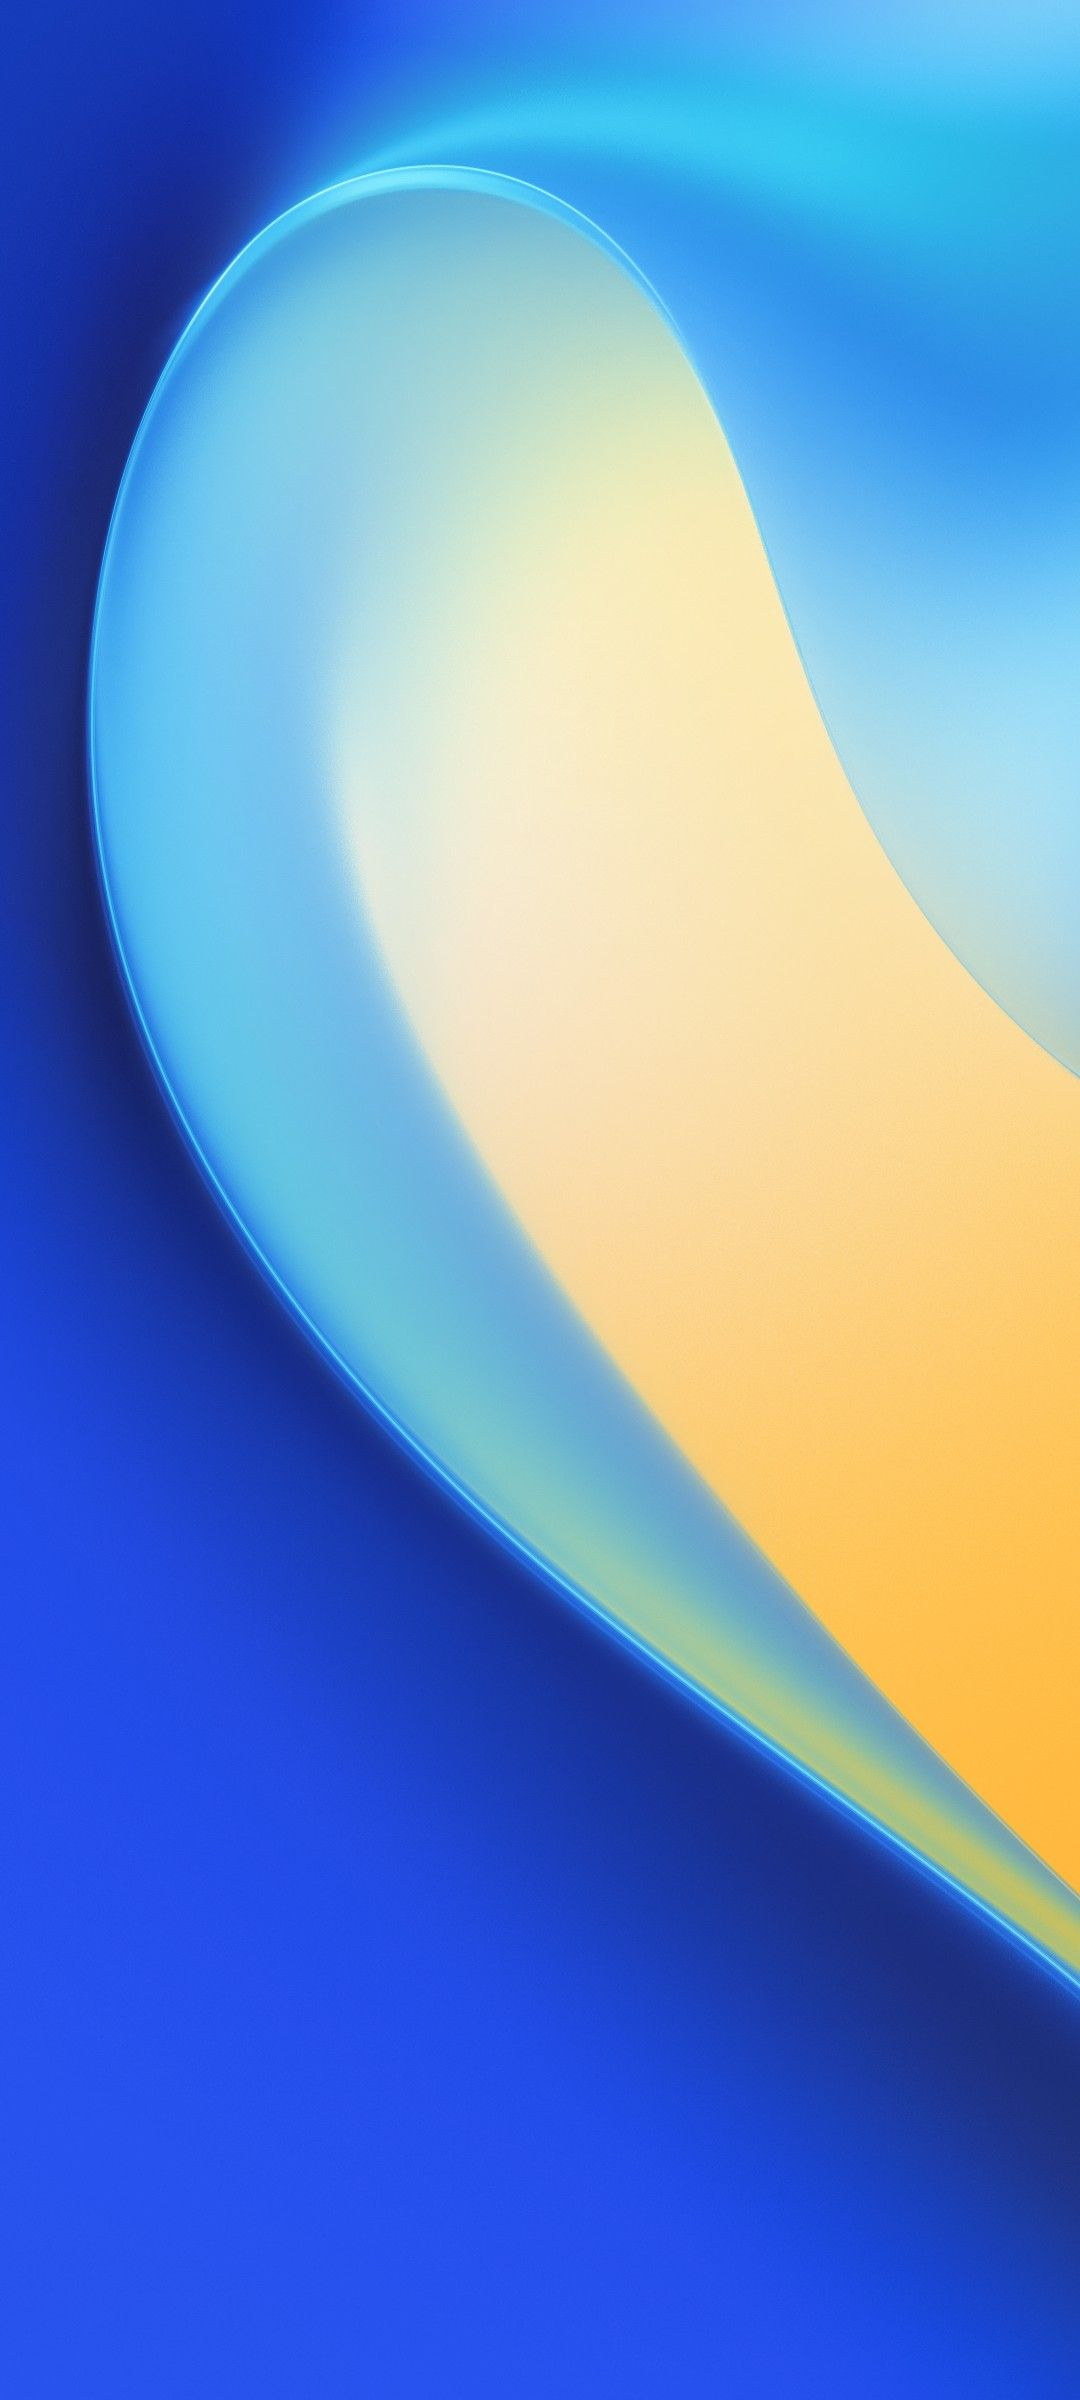 Realme 7 Pro Wallpaper 4k Wallpapers In 2020 Stock Wallpaper Abstract Wallpaper Backgrounds Cool Wallpapers For Phones